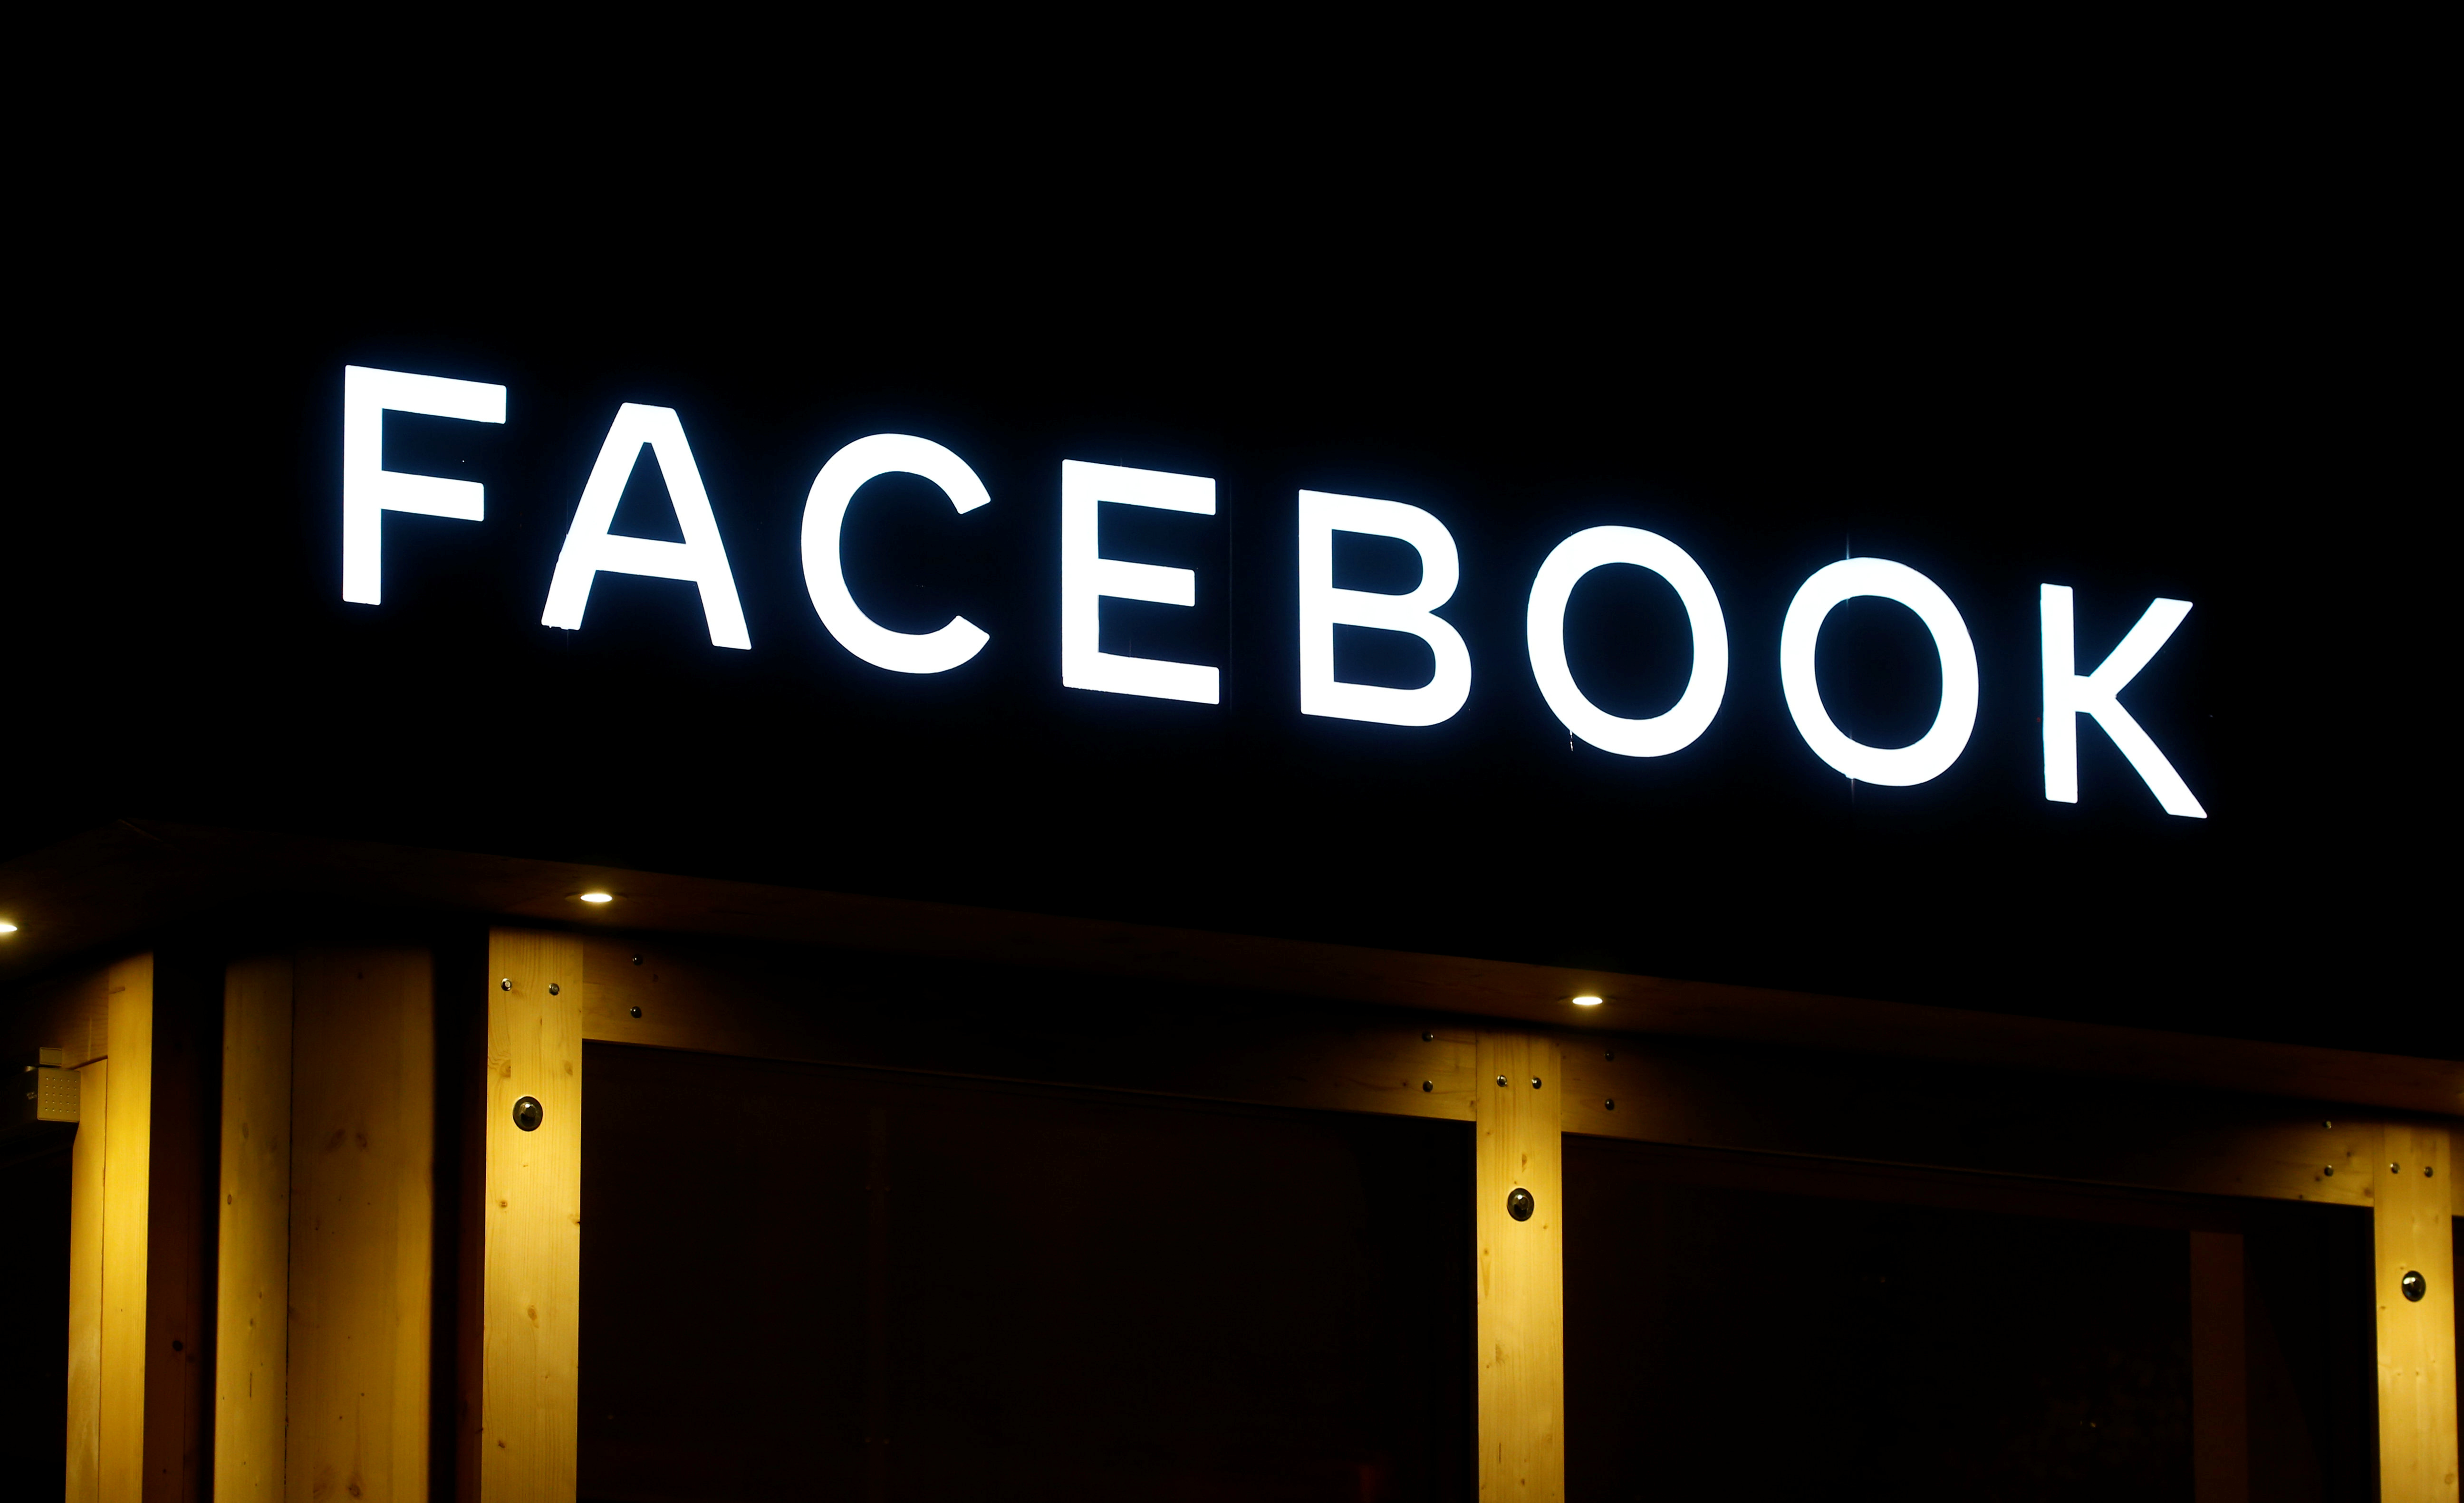 State attorneys general will appeal dismissal of Facebook antitrust suit